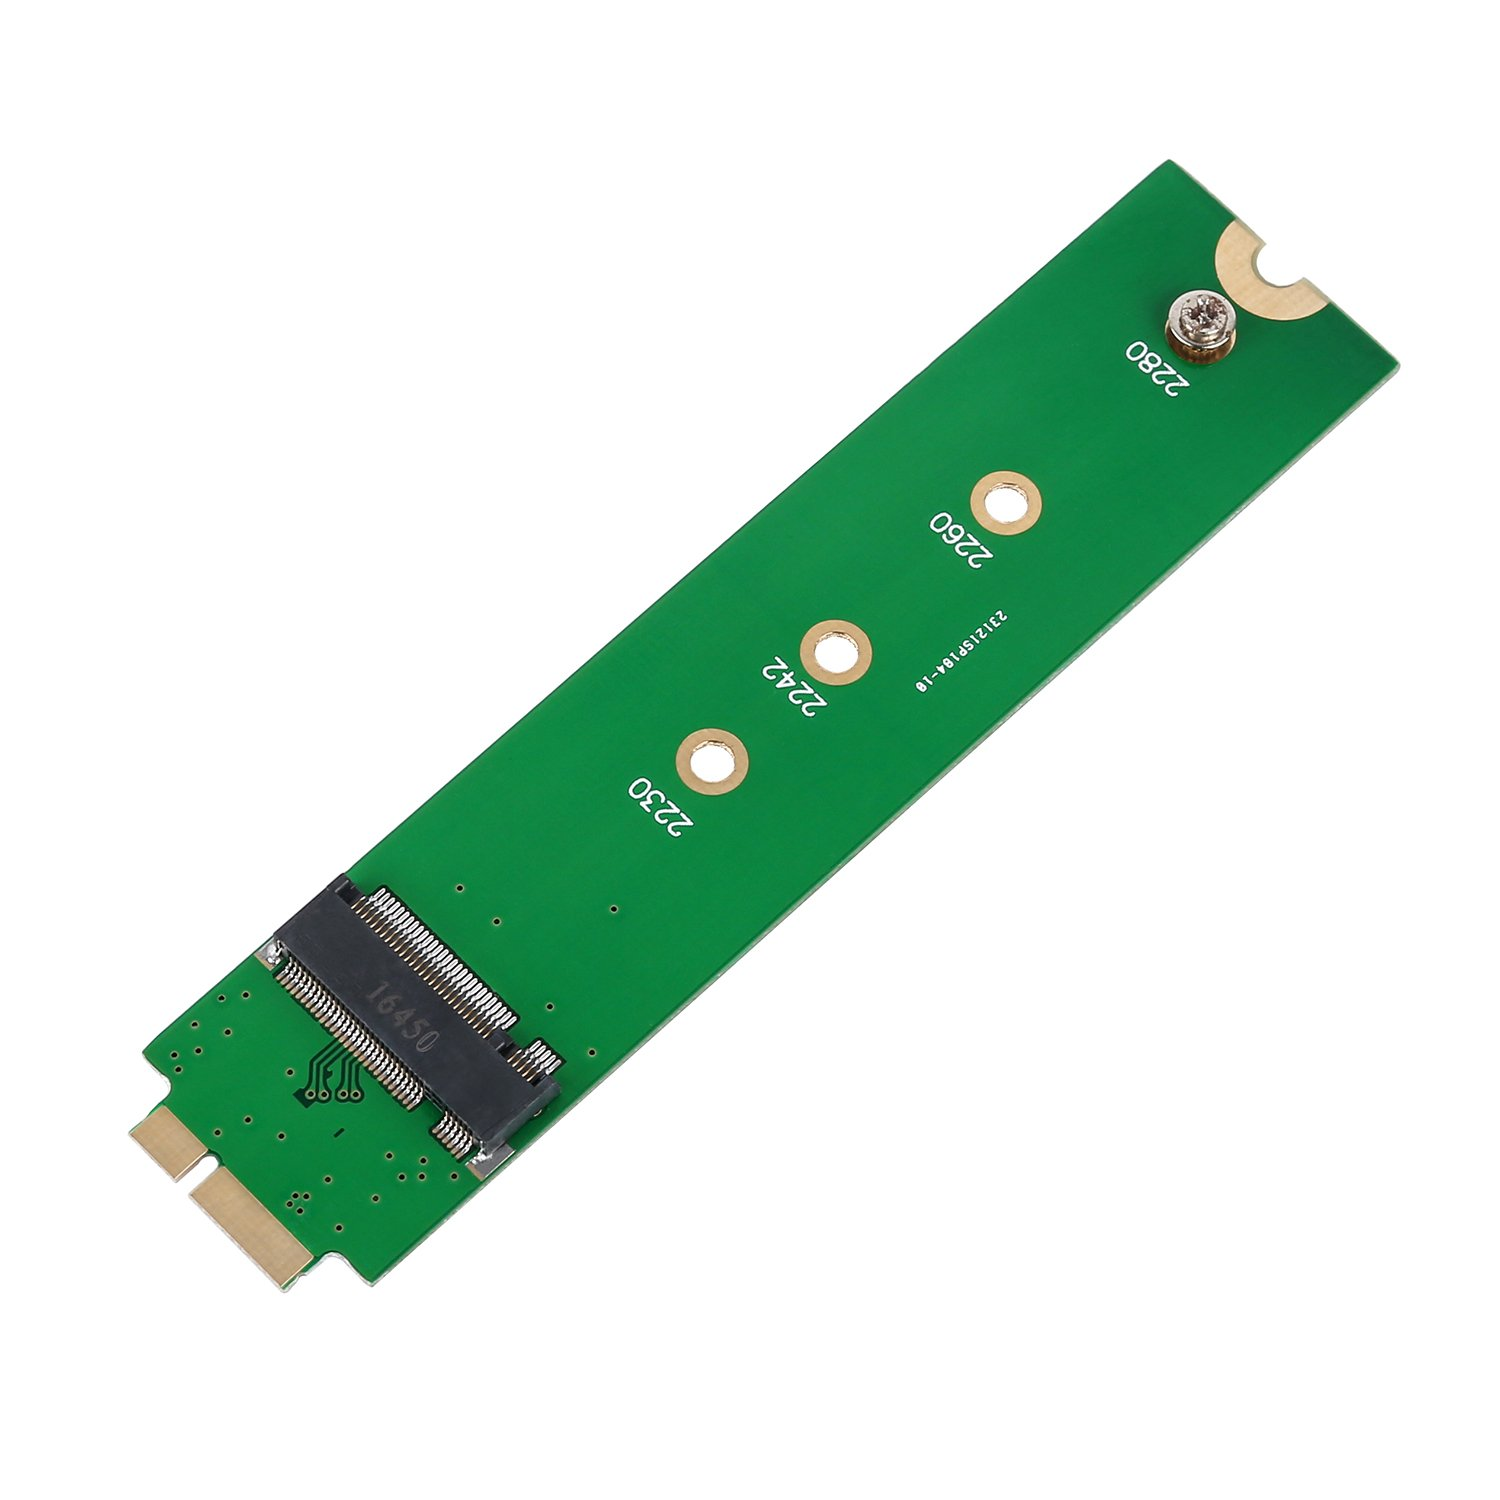 SHINESTAR M.2 NGFF SSD to A1369 A1370 Adapter for 2010 2011 MacBook Air HDD Replacement, Converter Card Support 2230 2242 2260 2280 Solid State Drive by SHINESTAR (Image #2)